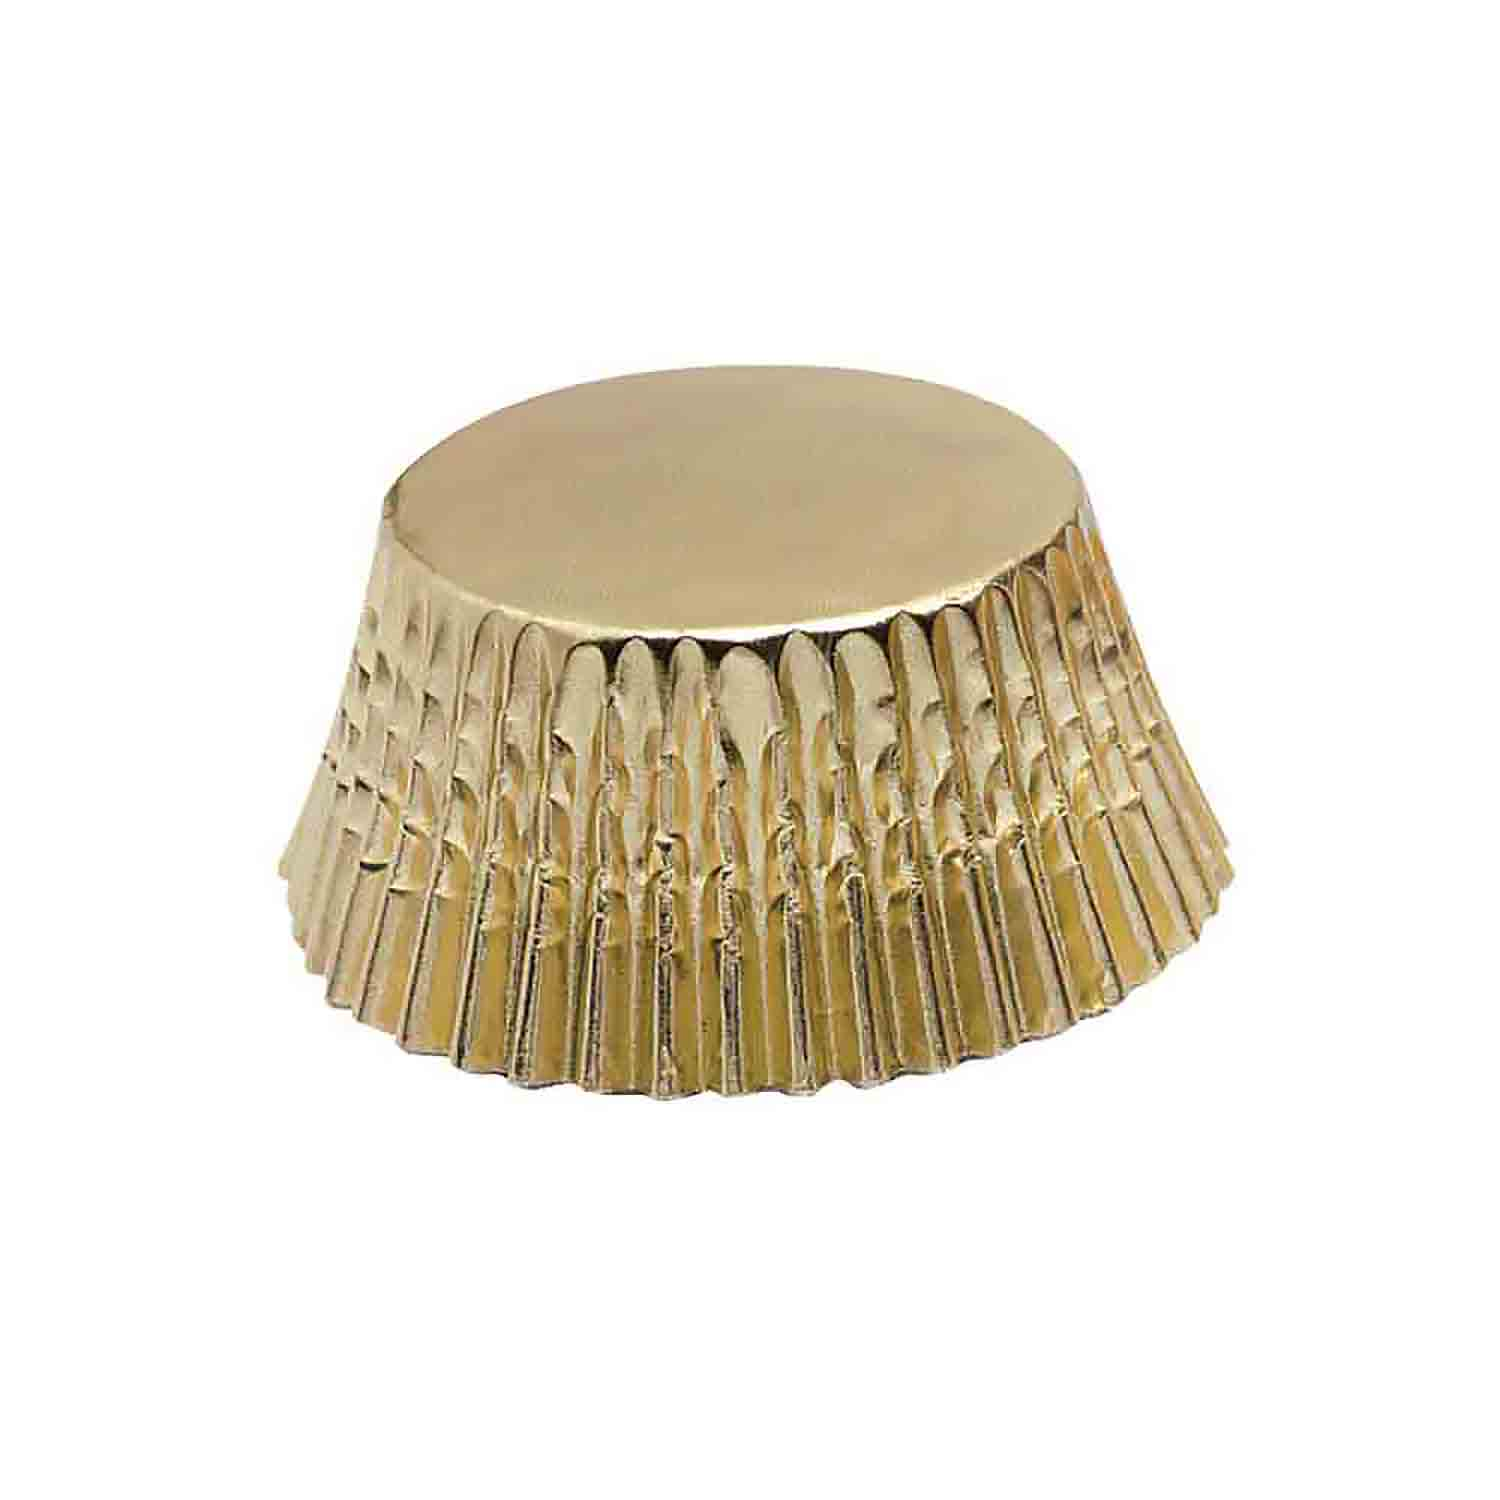 Country Kitchen Fort Wayne: Gold Foil Mini Baking Cups - FR-6970